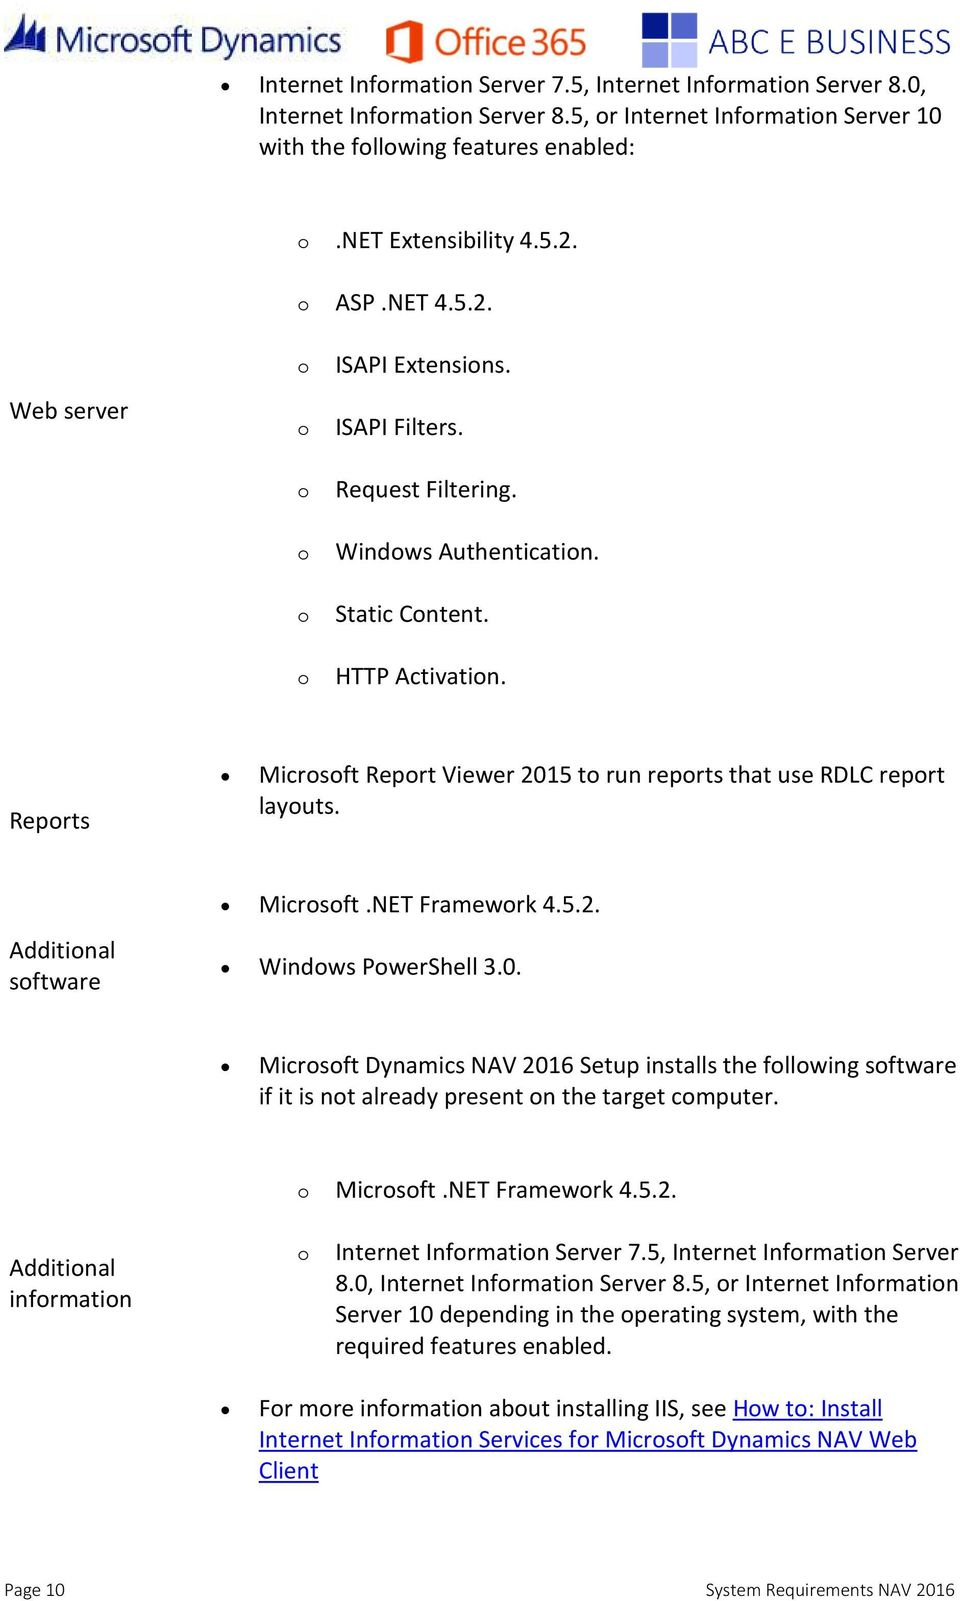 Reports Microsoft Report Viewer 2015 to run reports that use RDLC report layouts. Microsoft.NET Framework 4.5.2. software Windows PowerShell 3.0. Microsoft Dynamics NAV 2016 Setup installs the following software if it is not already present on the target computer.